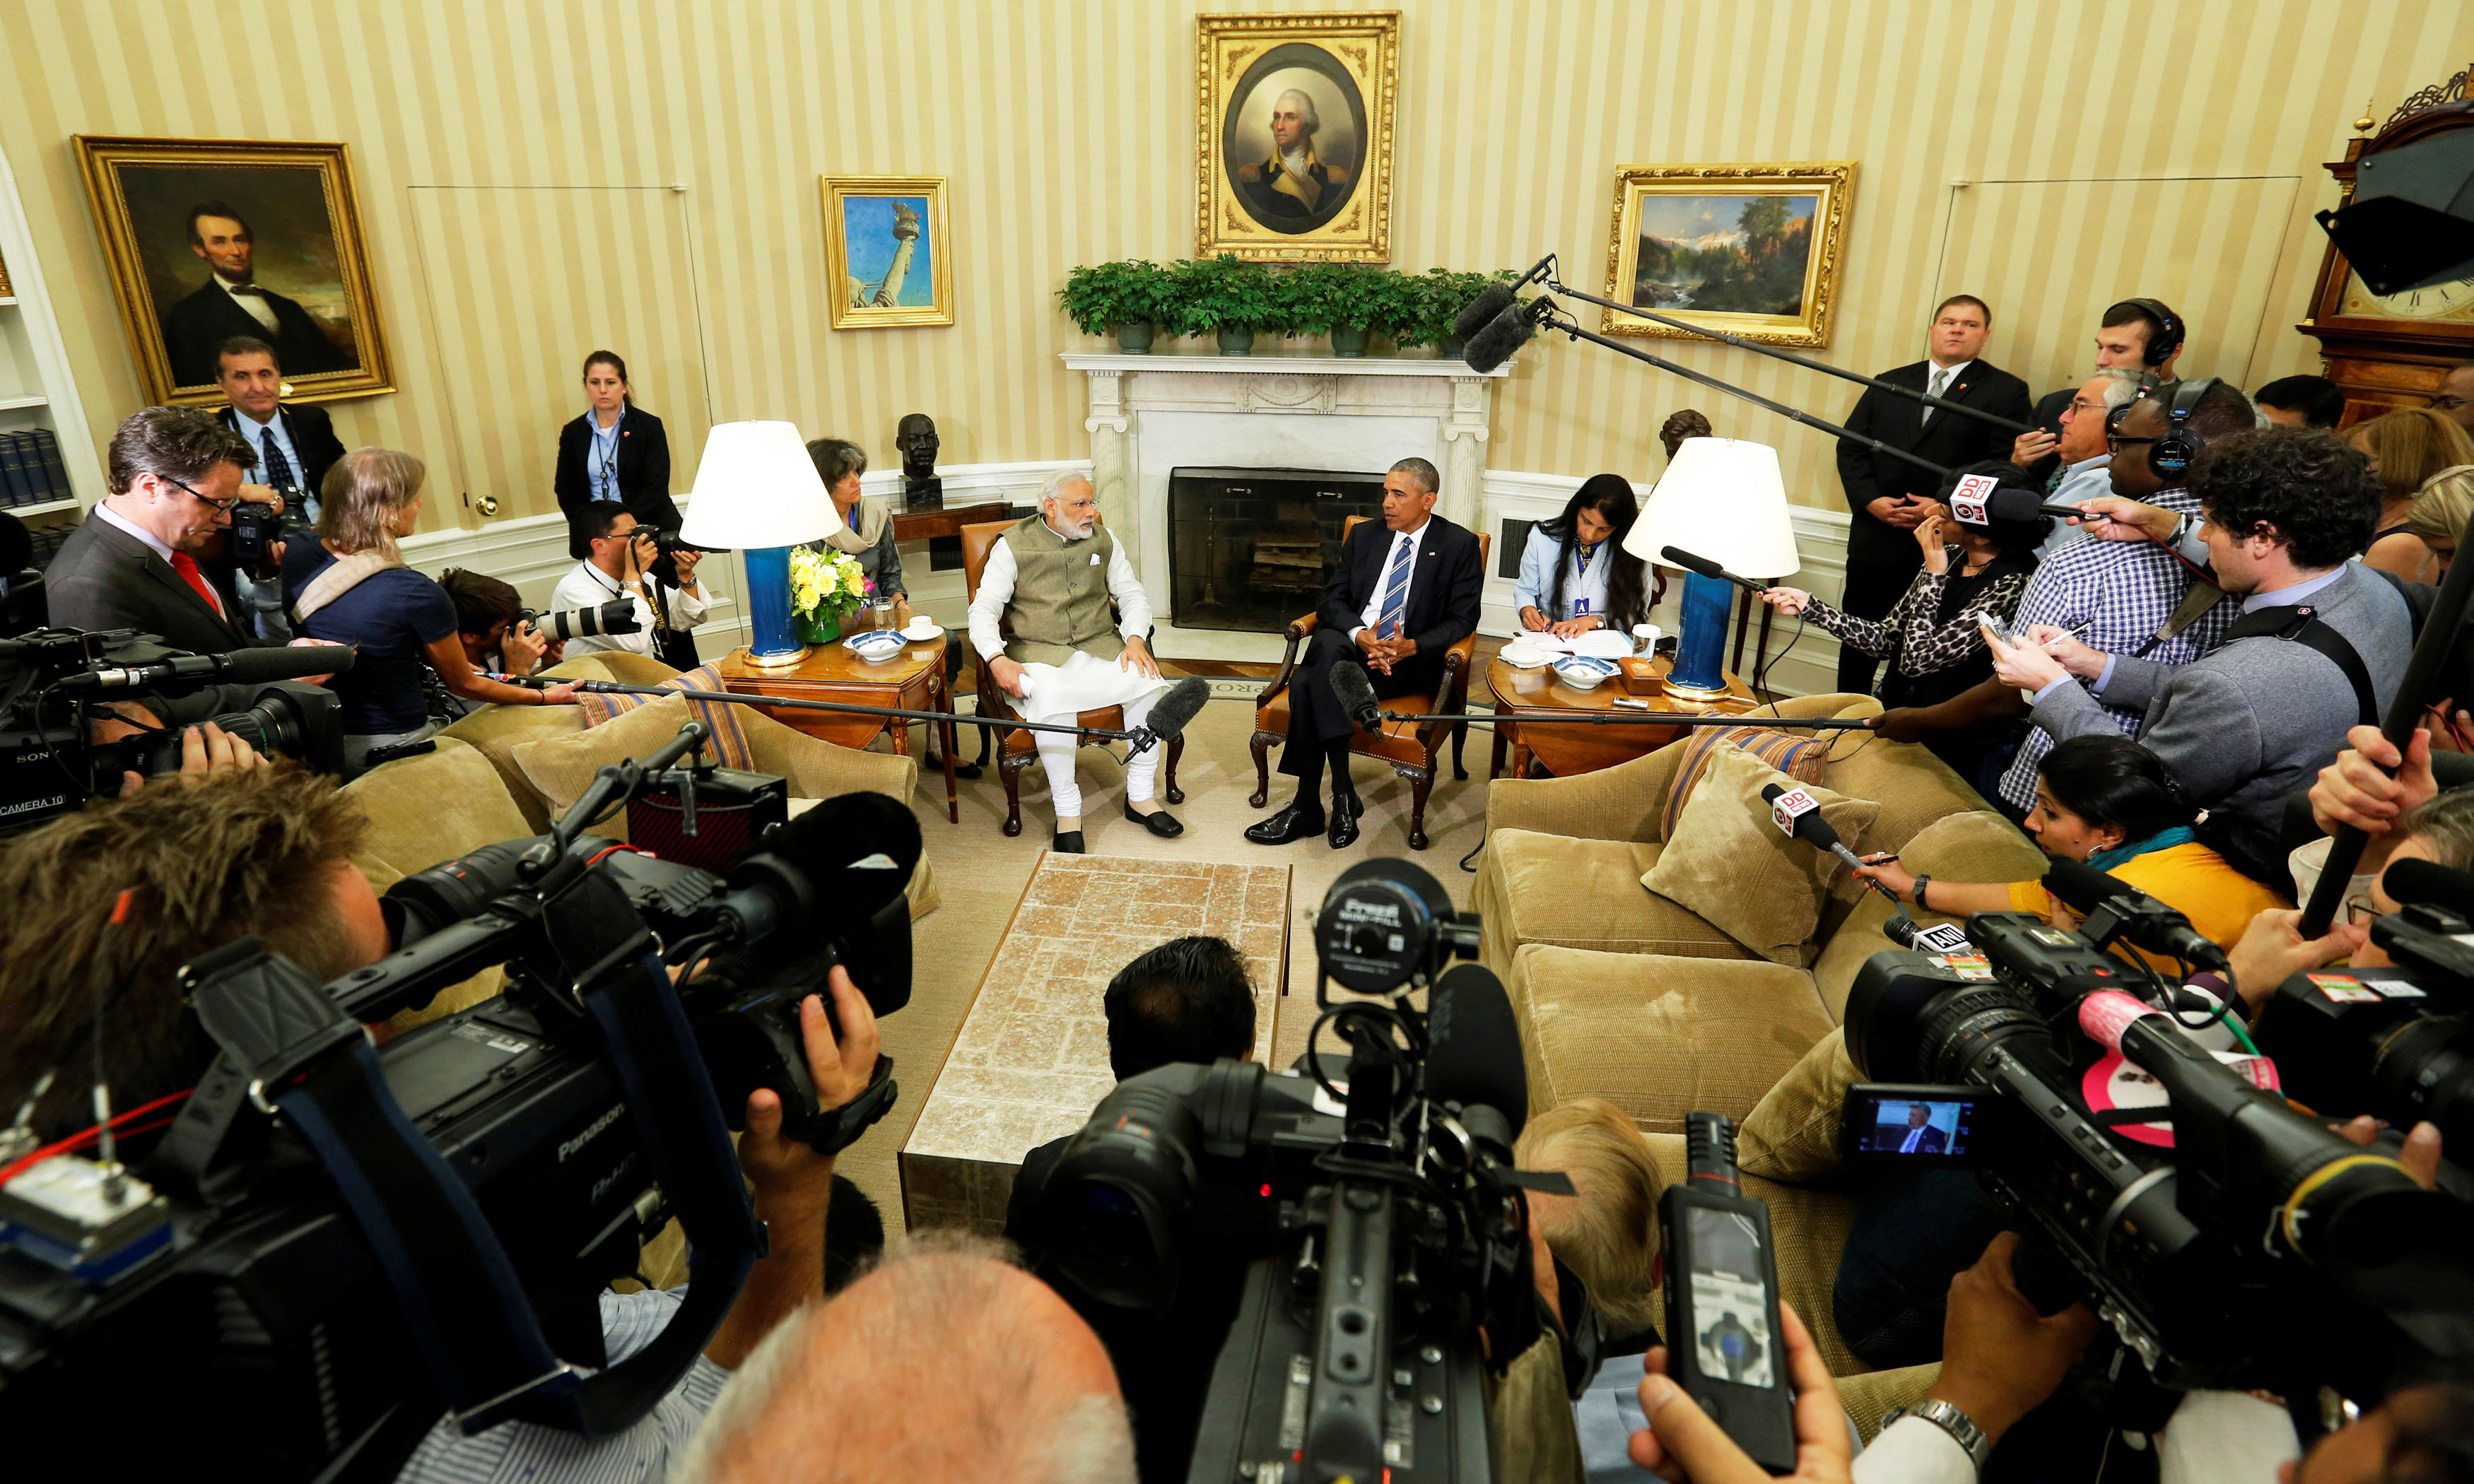 Narendra Modi and Barack Obama make remarks to reporters after their meeting in the Oval Office at the White House in Washington. —Reuters